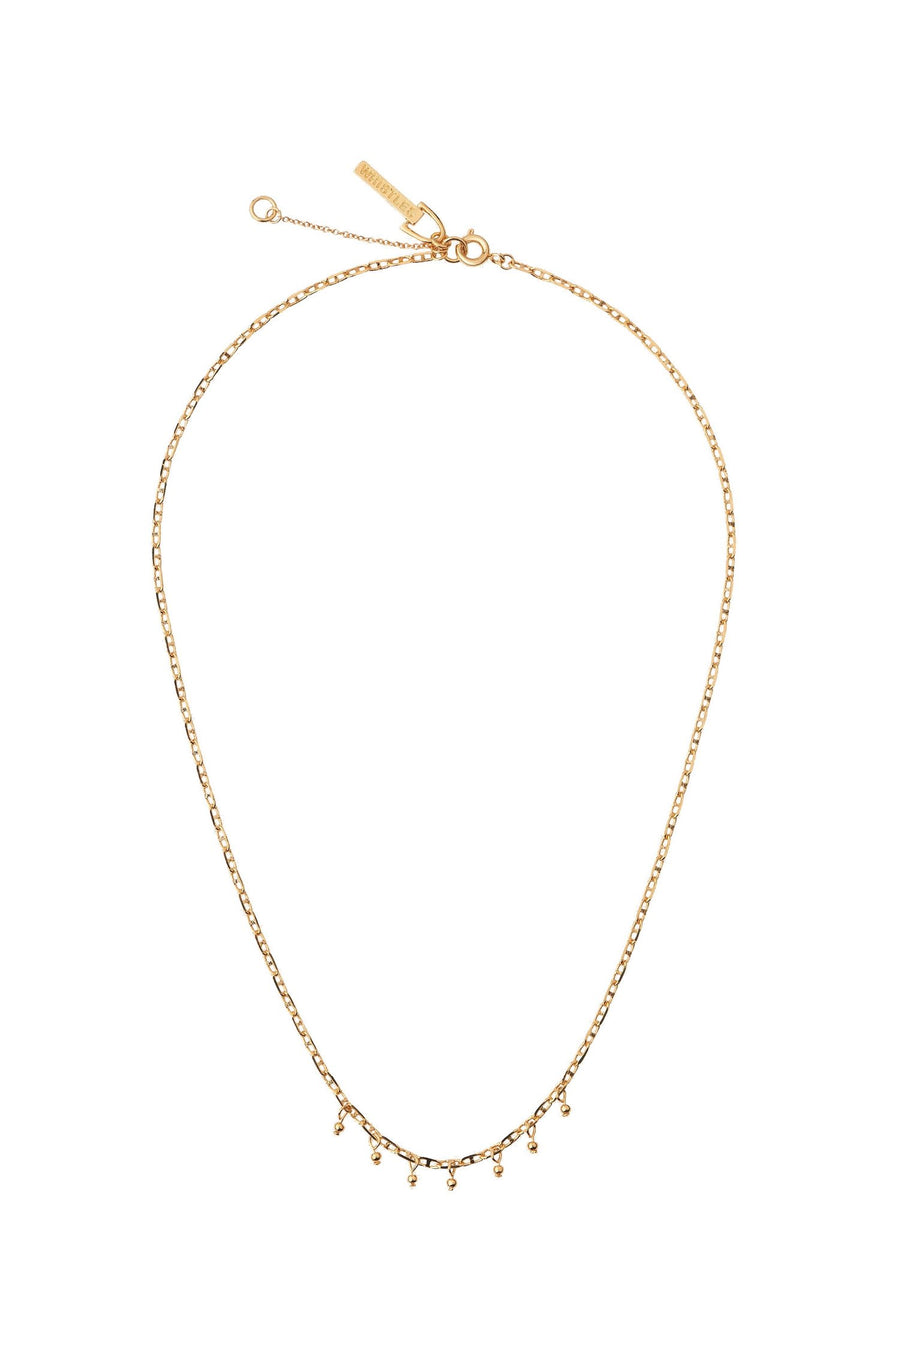 Seed Bead Chain Necklace Gold-Multi